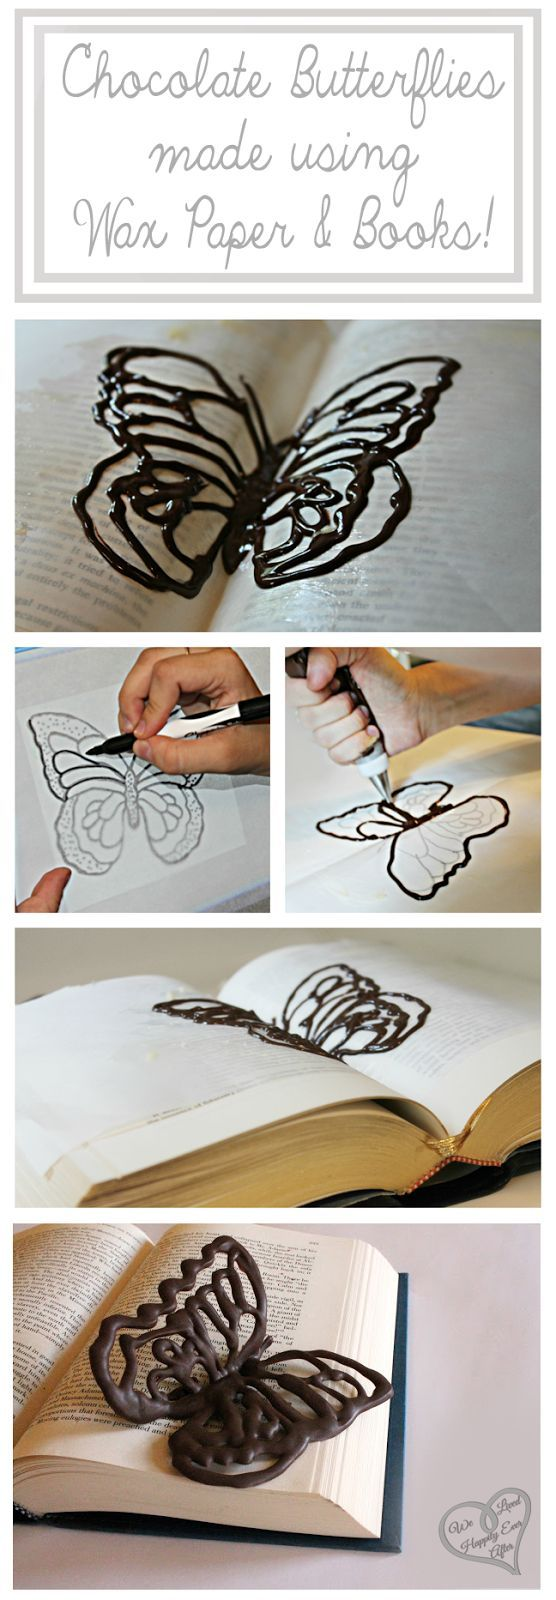 Chocolate Butterflies Using Wax Paper and Books! {Pattern Included #bookspapersandthings